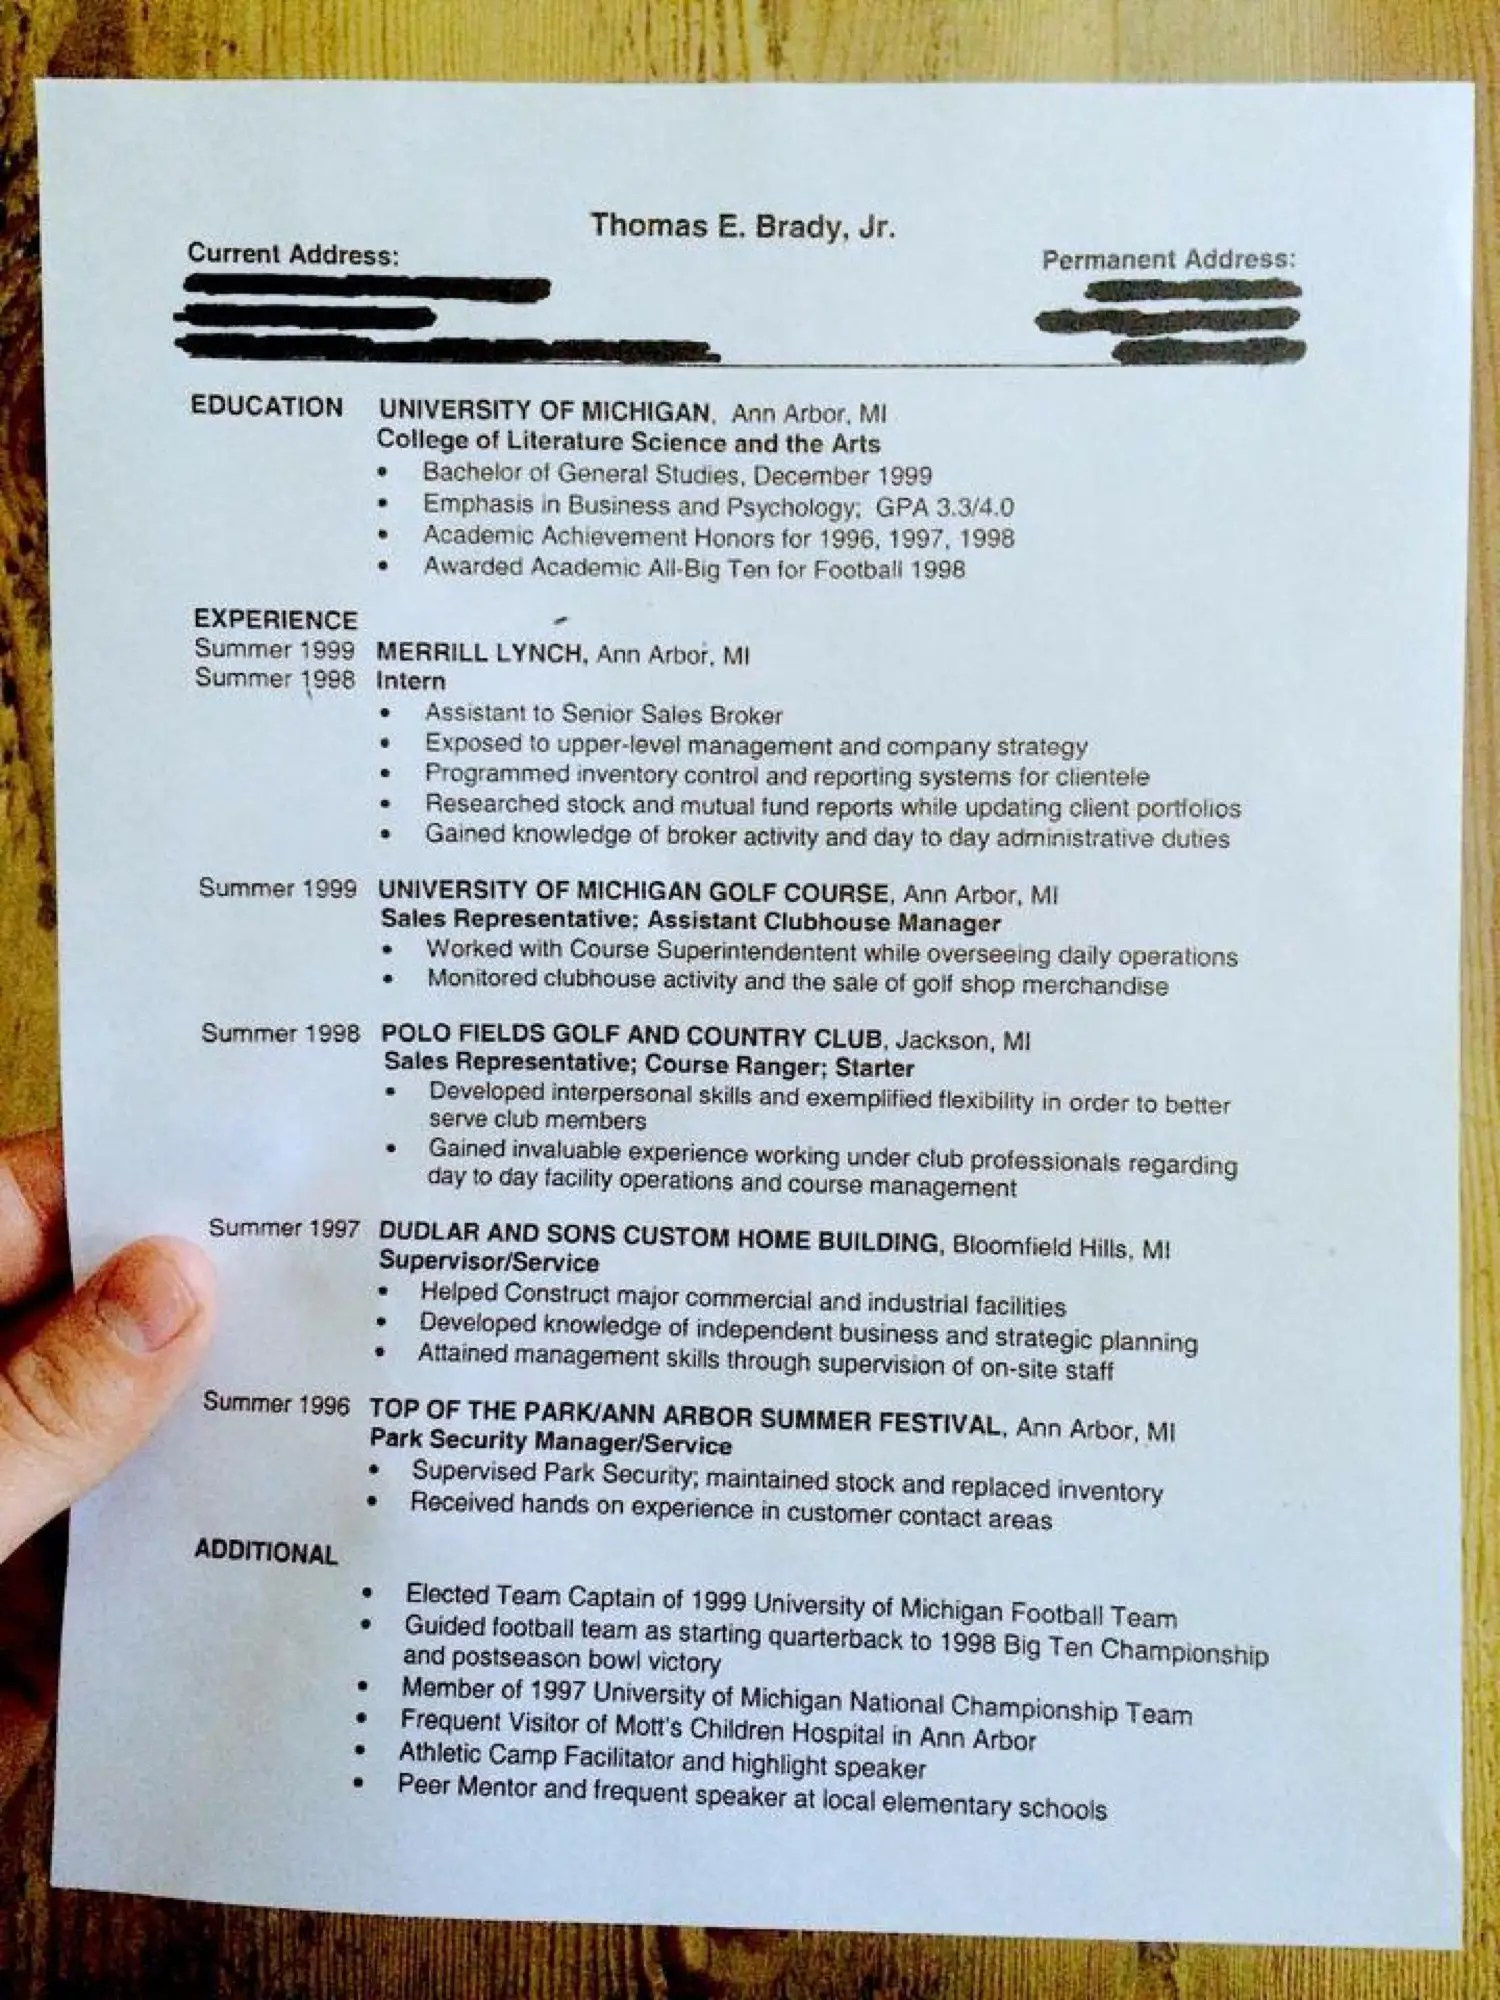 College Student Resume Example The Balance Heres Tom Bradys College R233;sum233; Business Insider